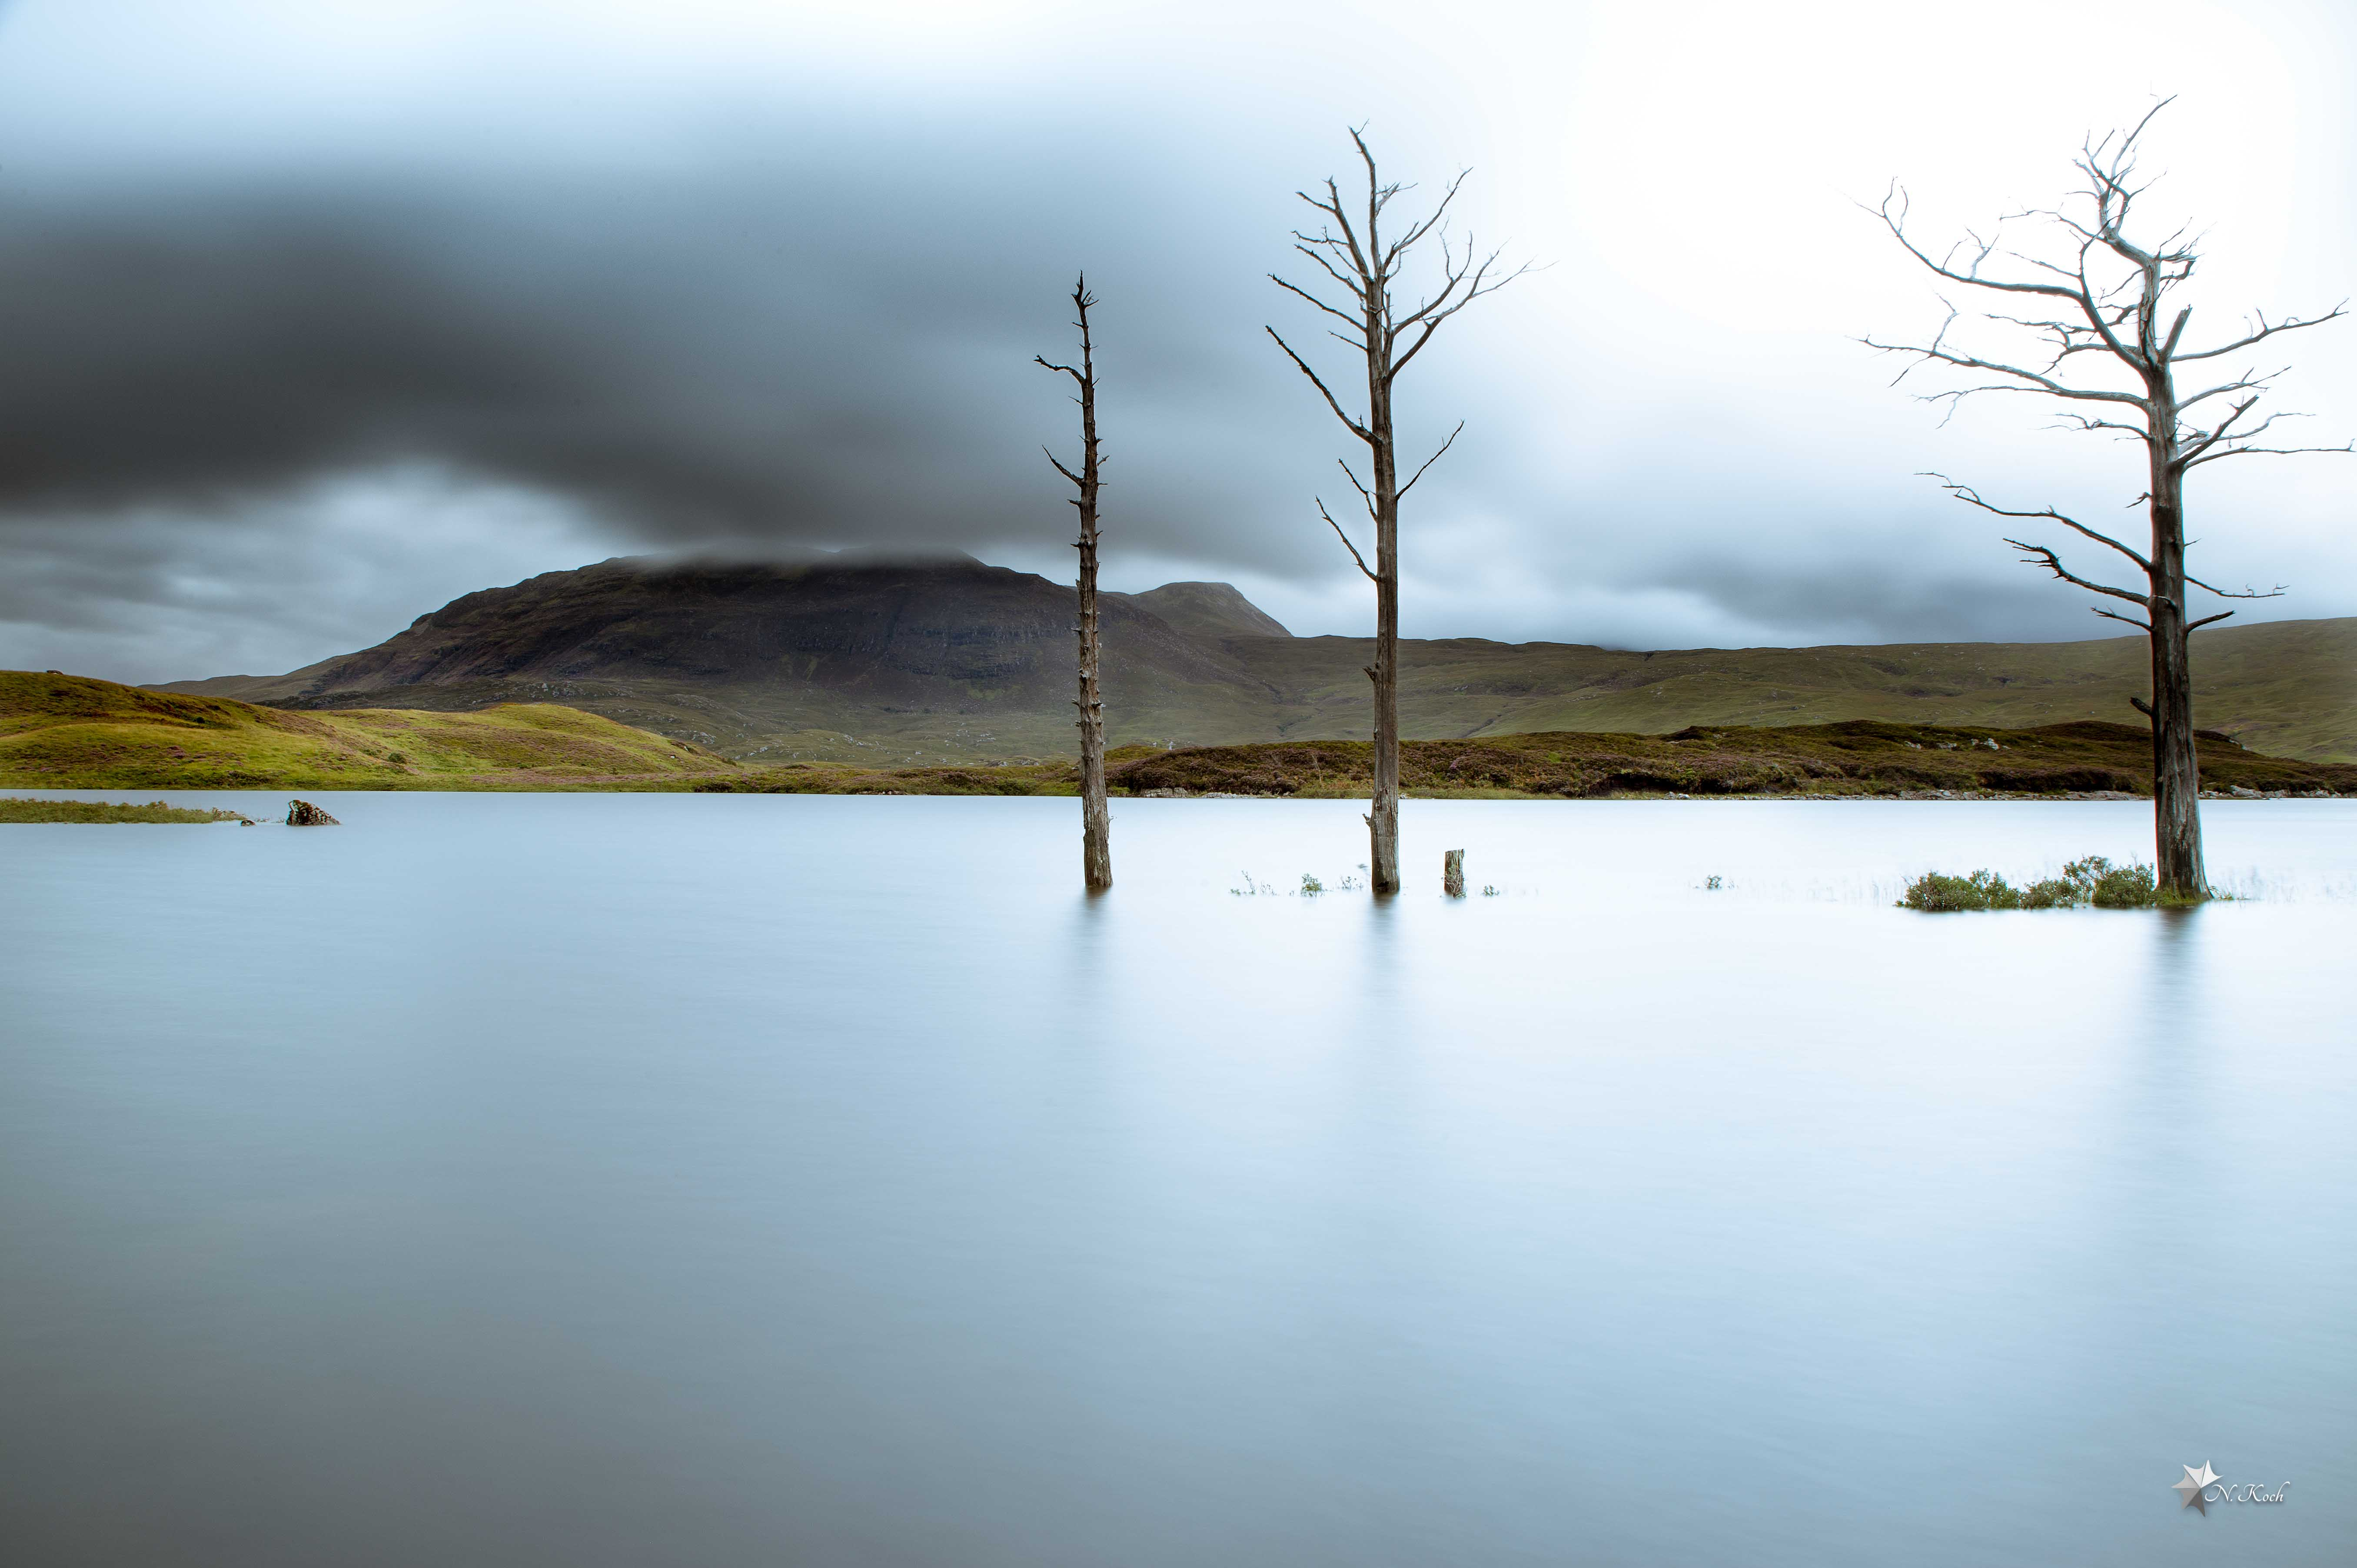 2016, Scotland | In the sign of three - trees